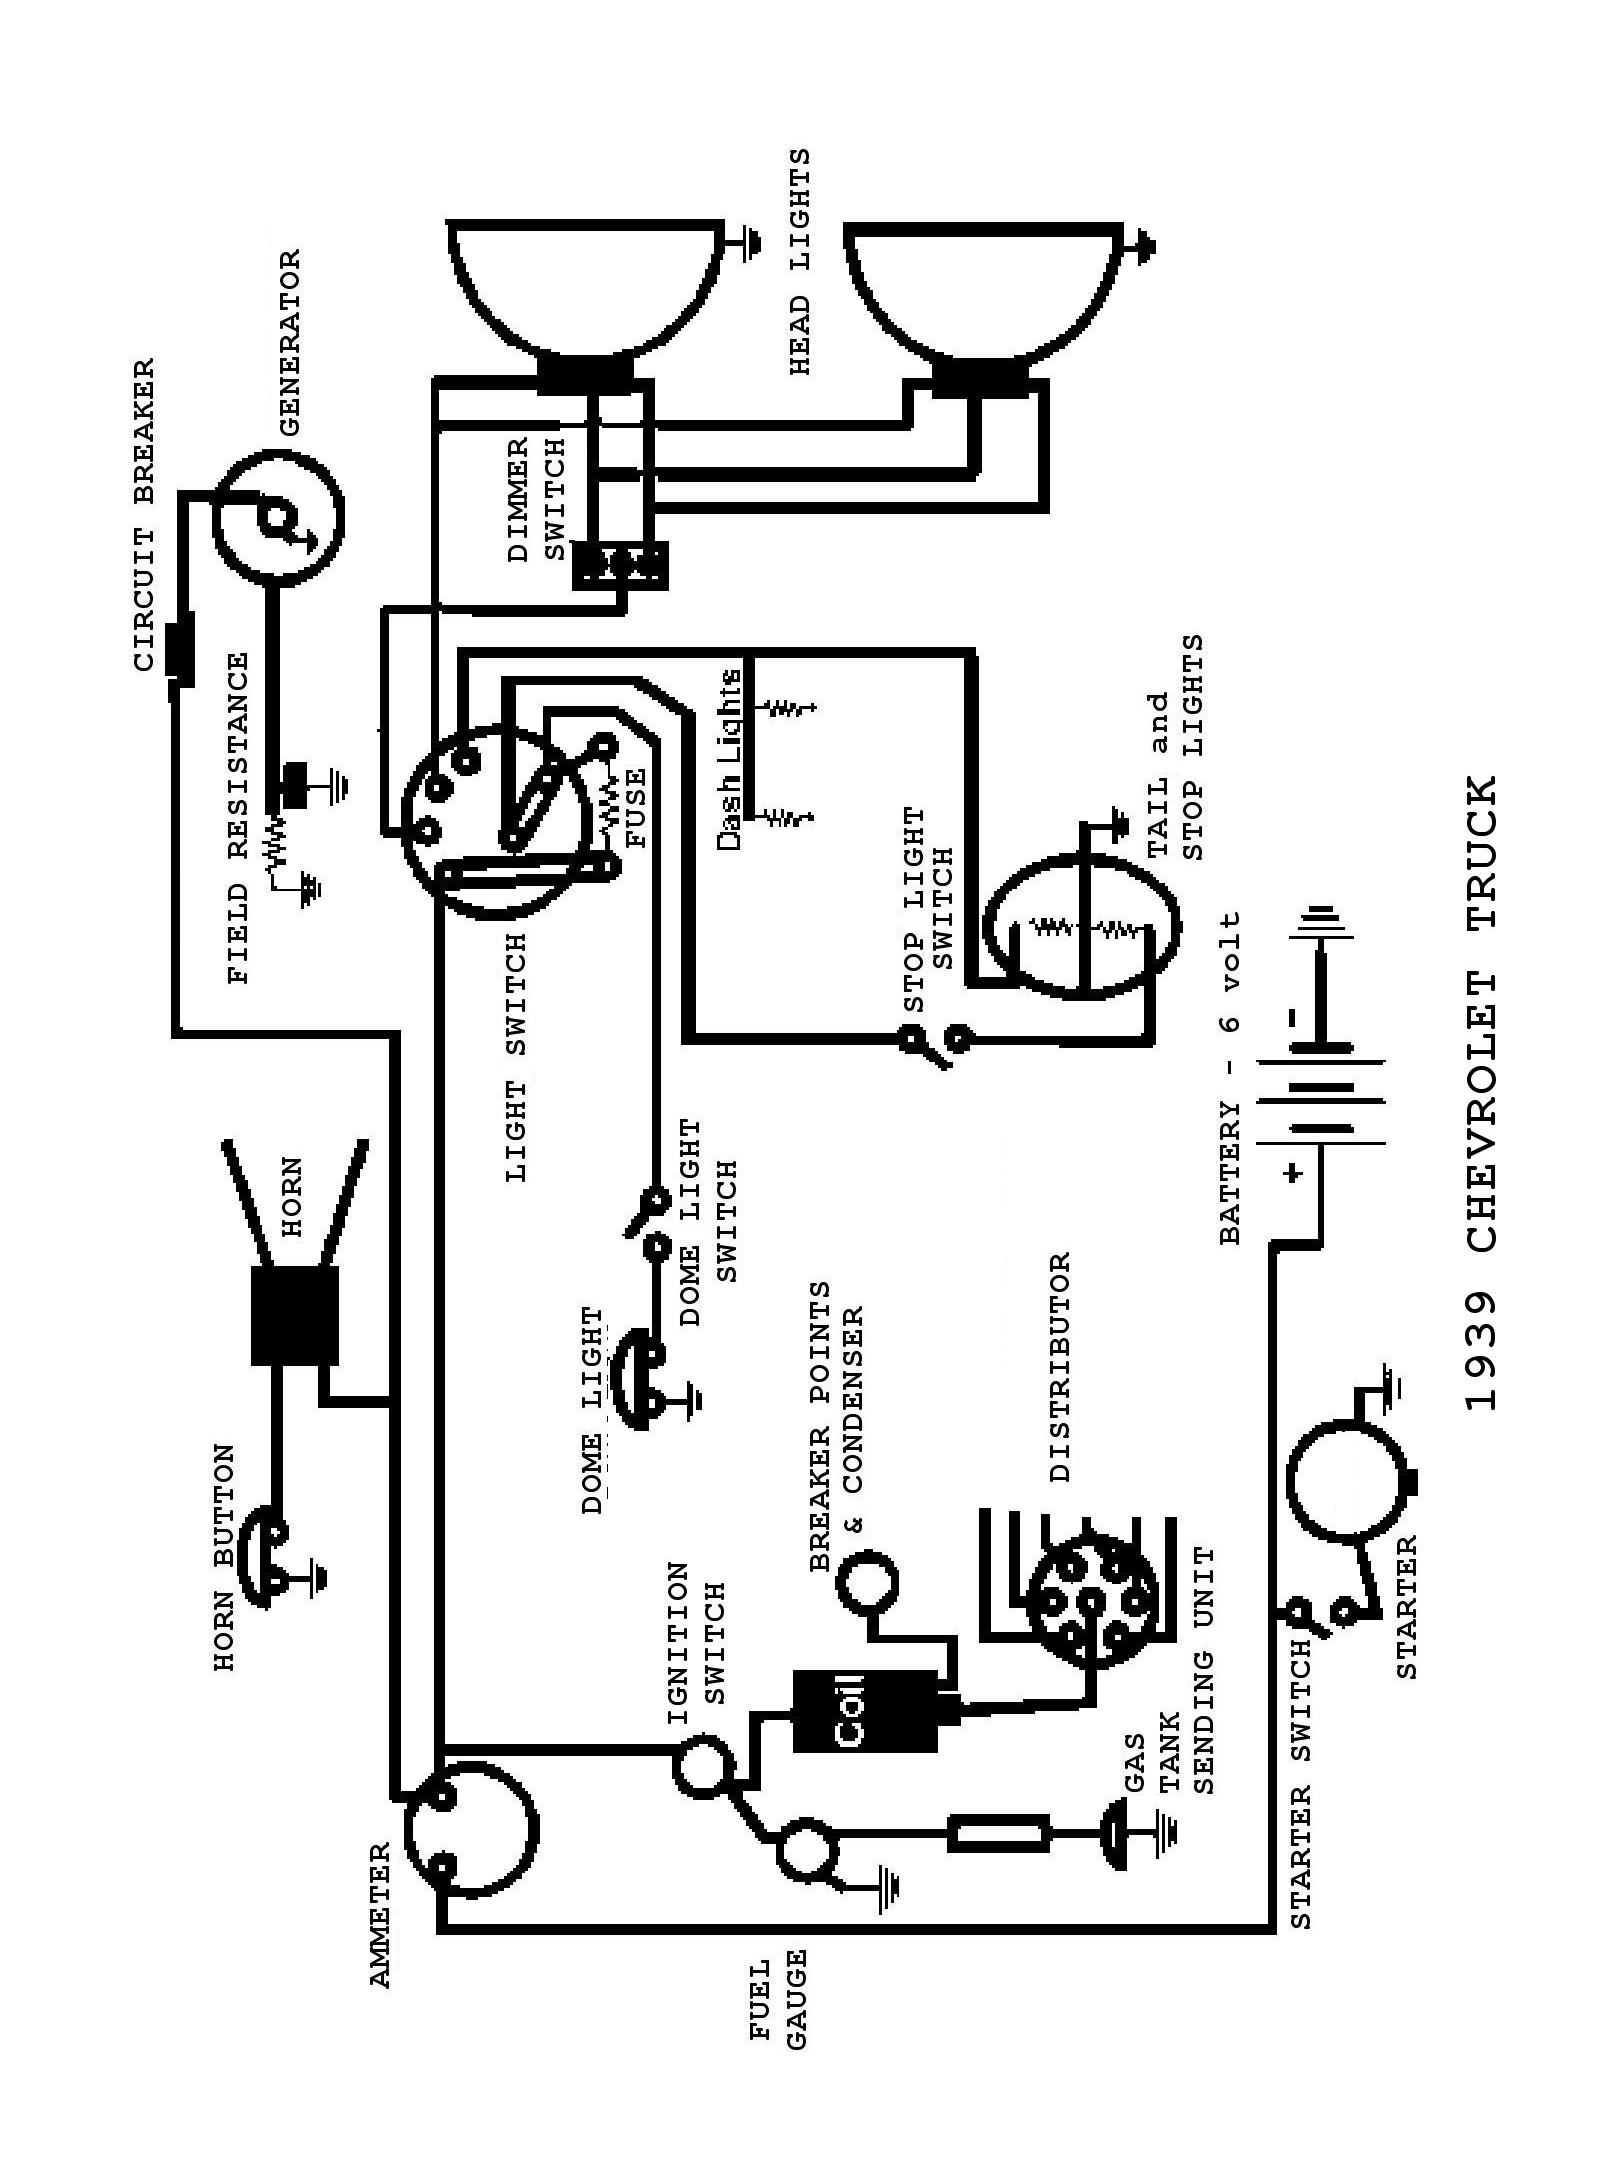 39truck 1931 chevrolet wiring diagram wiring diagram simonand 66 Chevy Headlight Switch Wiring Diagram at bakdesigns.co